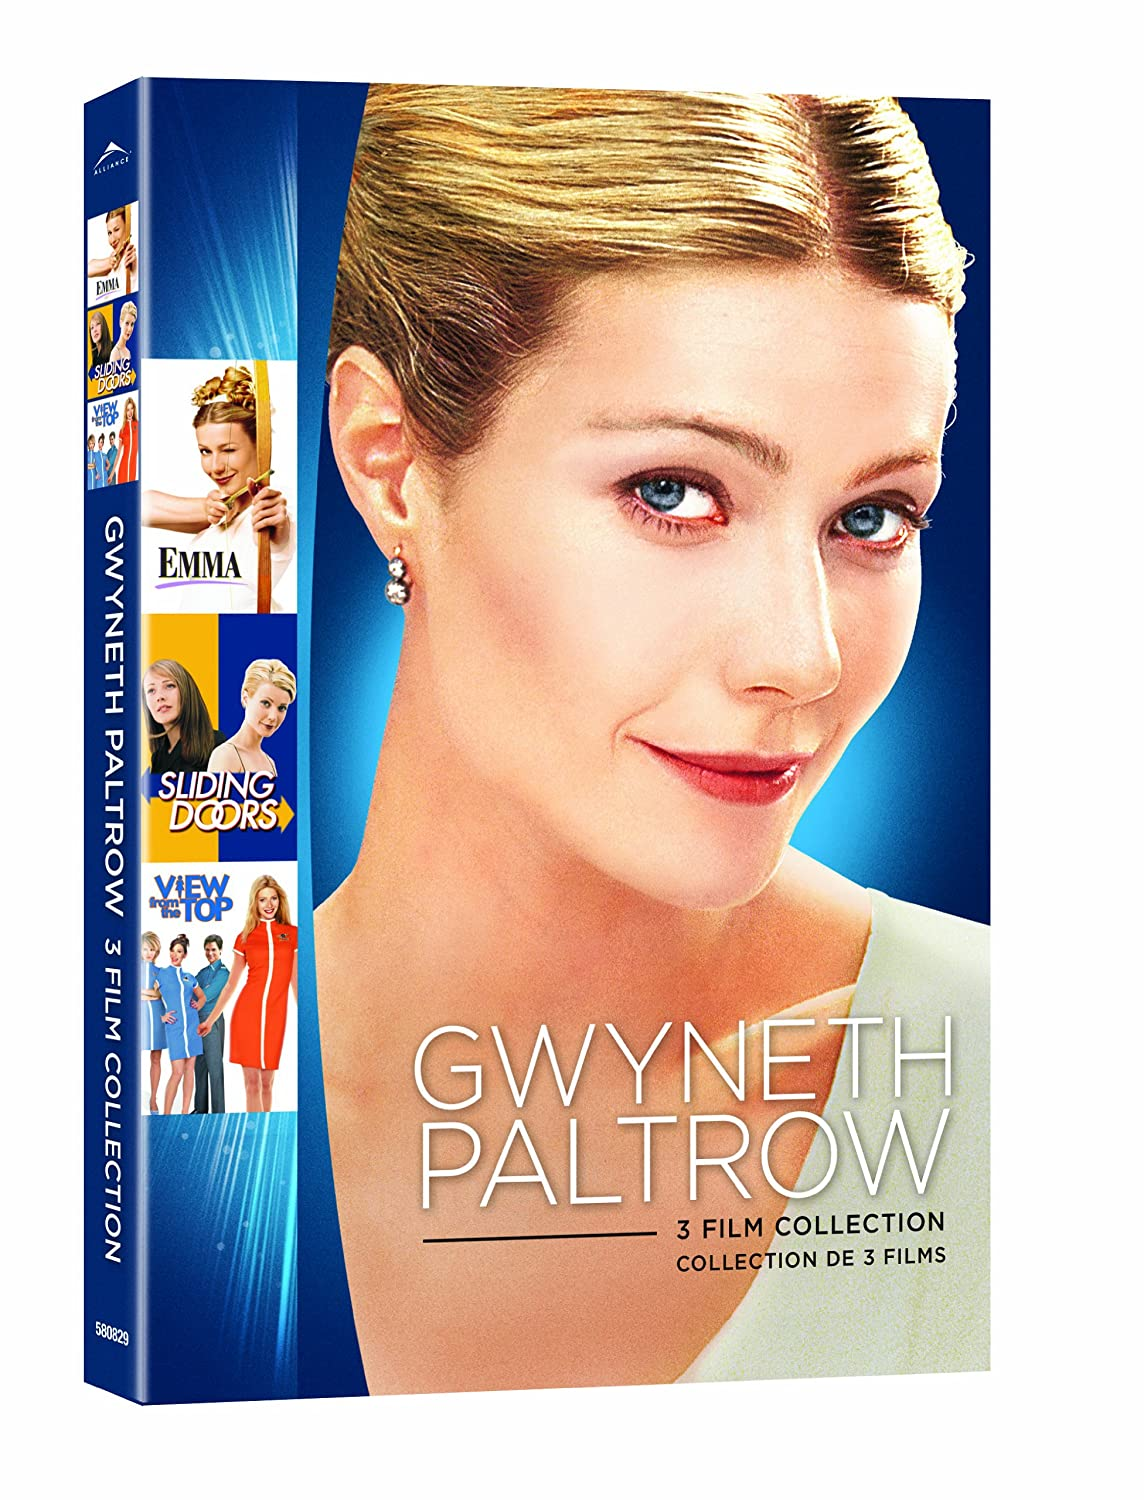 Amazon Emma Sliding Doors View From The Top Gwyneth